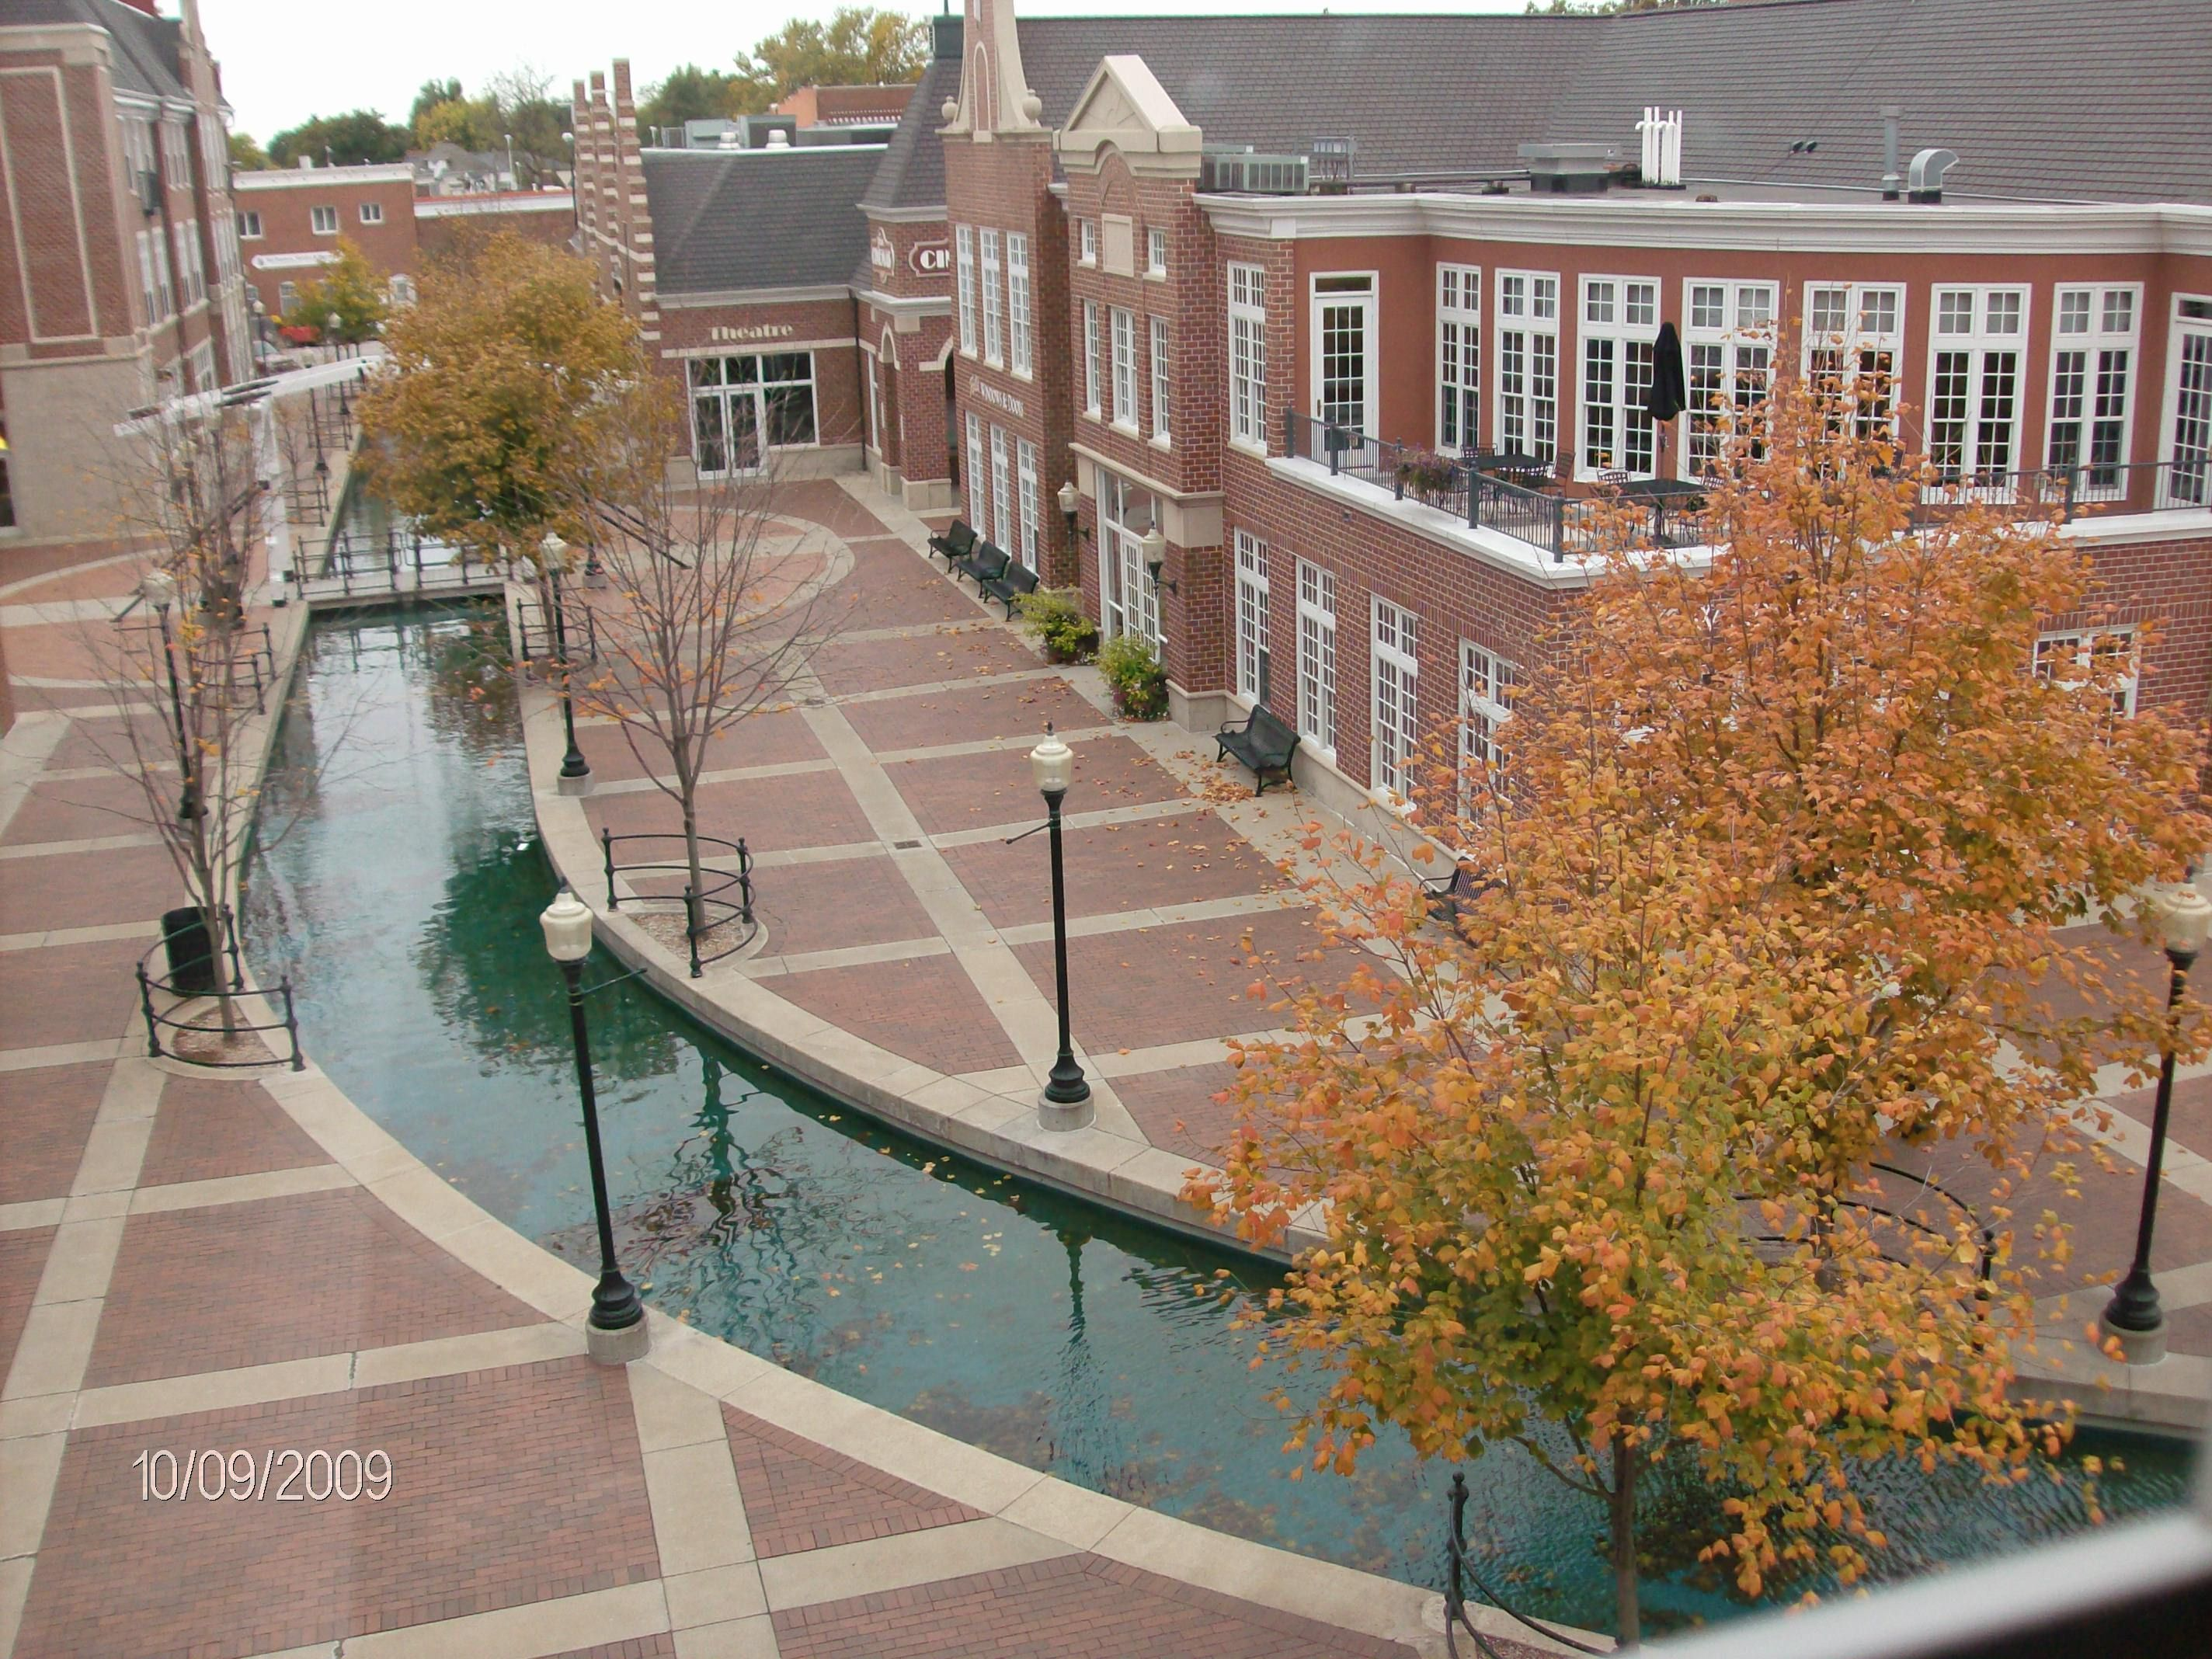 Pella Iowa C View From Royal Amsterdam Hotel Window Photo By Marti Schuller